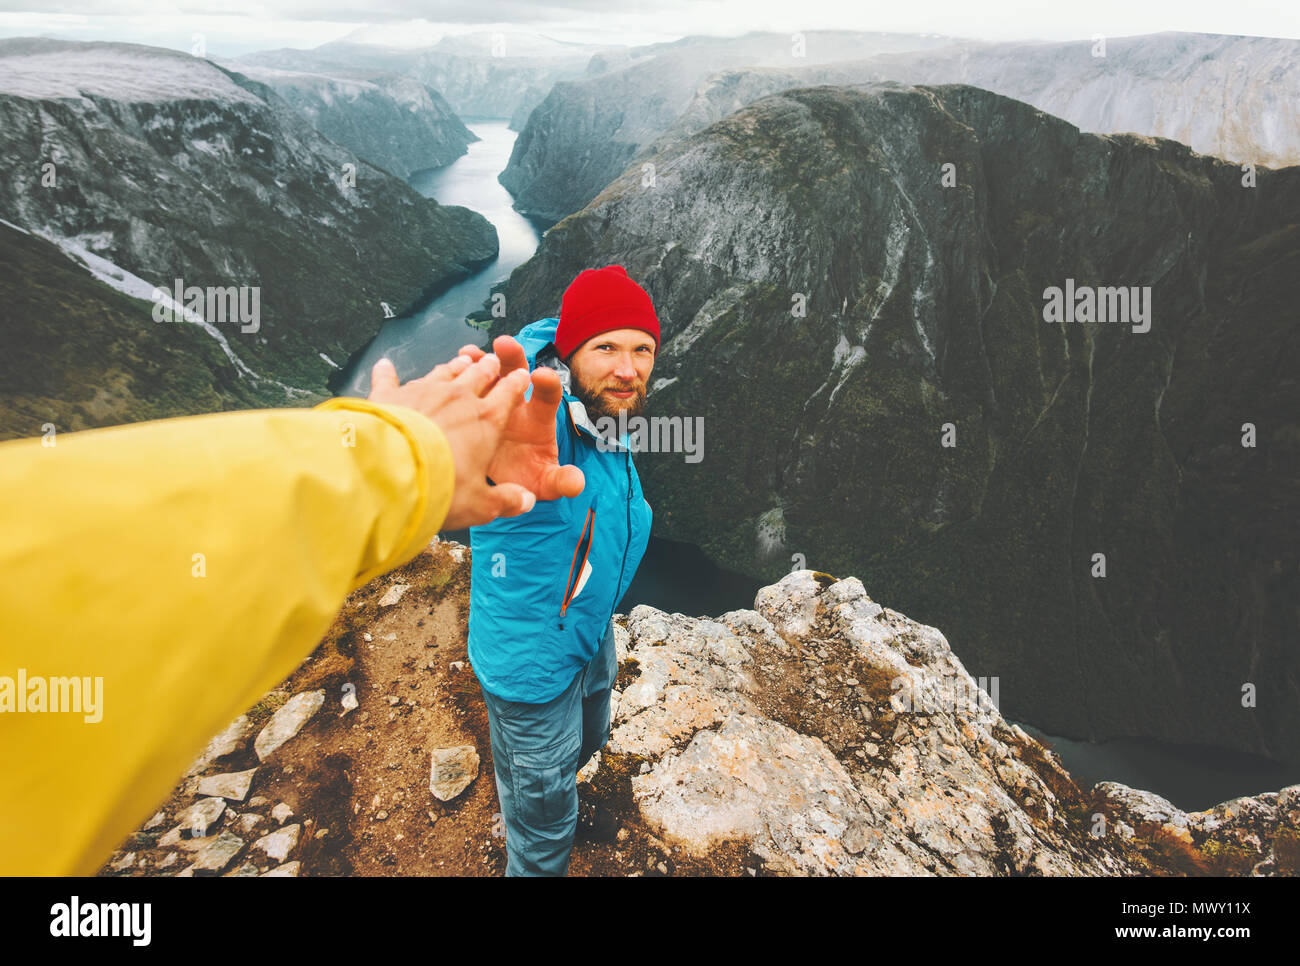 Couple adventurers in mountains follow helping hand traveling together lifestyle concept extreme vacations adventure weekend getaway in Norway - Stock Image